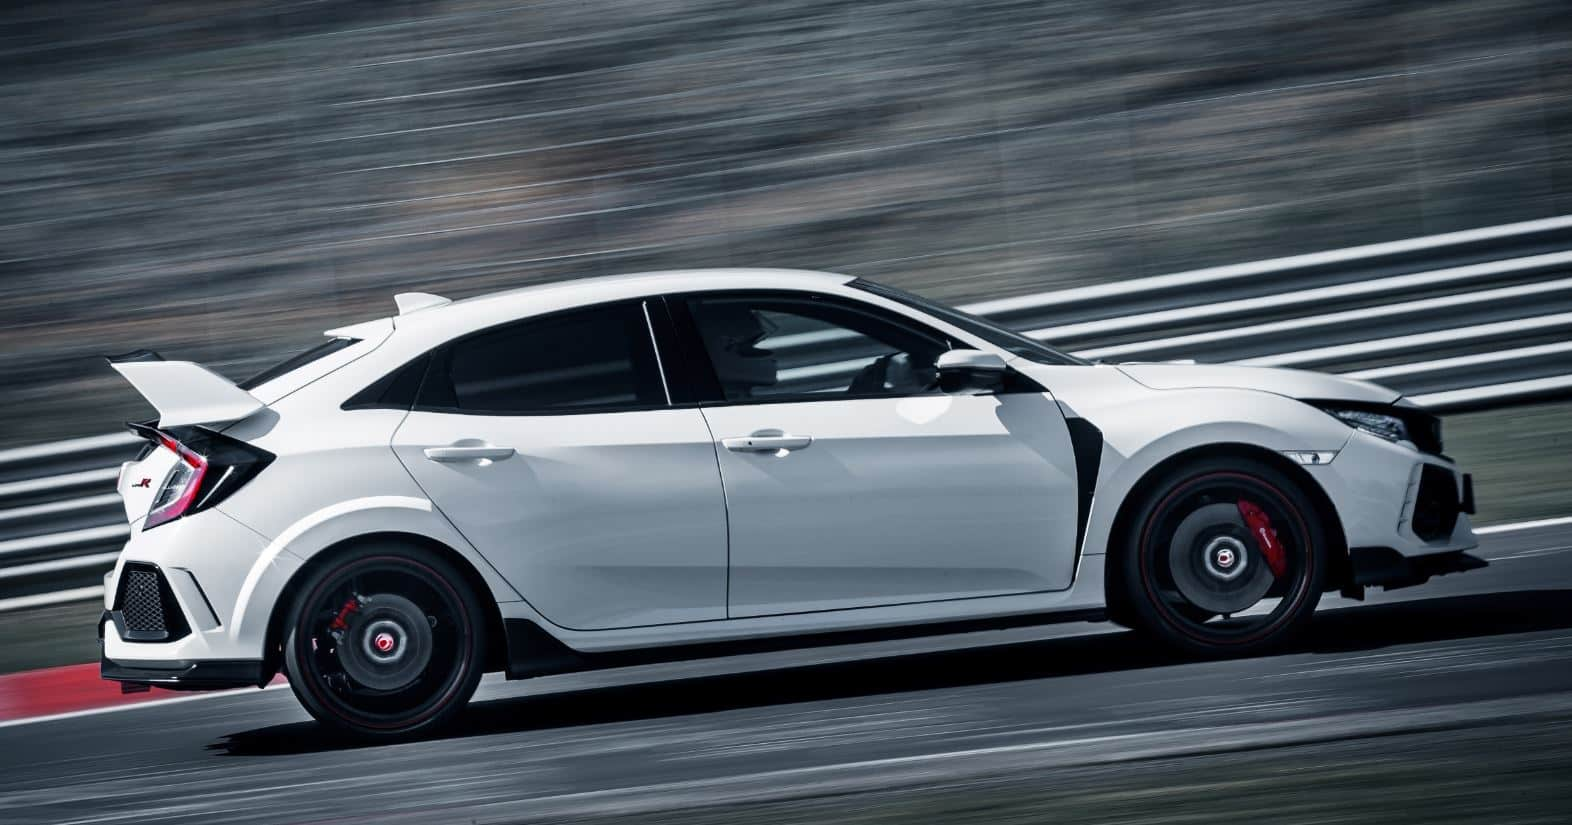 honda civic type r Nürburgring 2